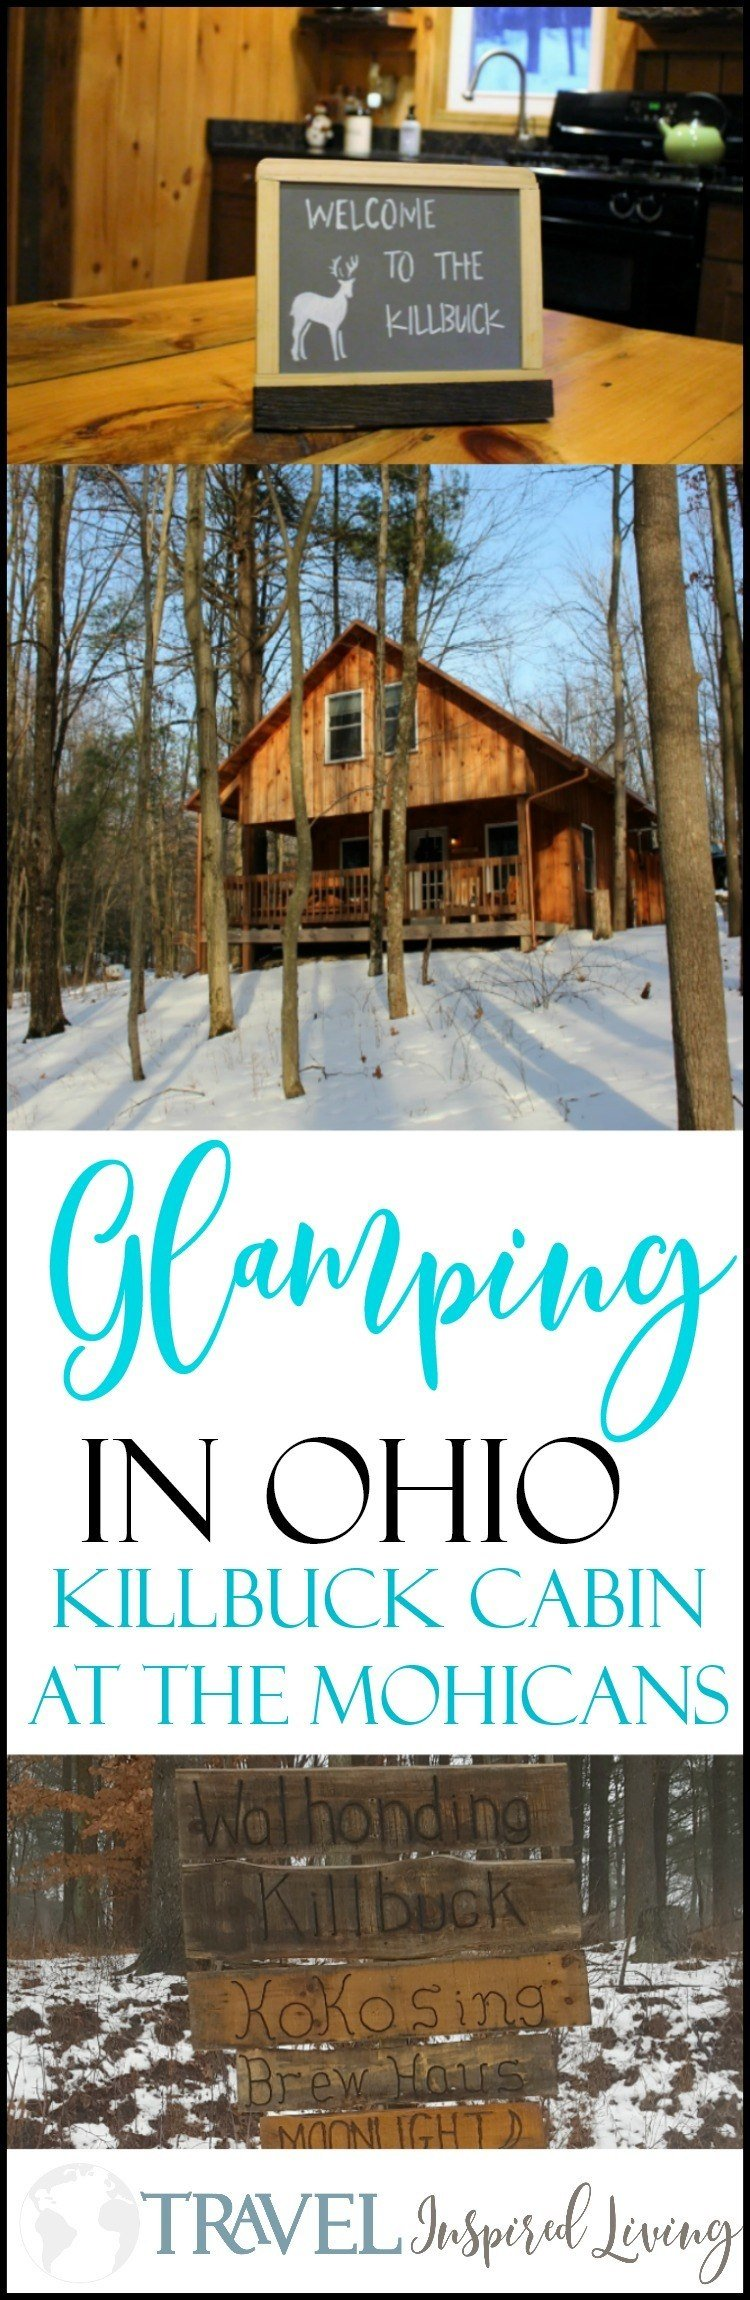 If you're looking for a destination where you can go Glamping in Ohio, consider a stay in the Killbuck Cabin at The Mohicans